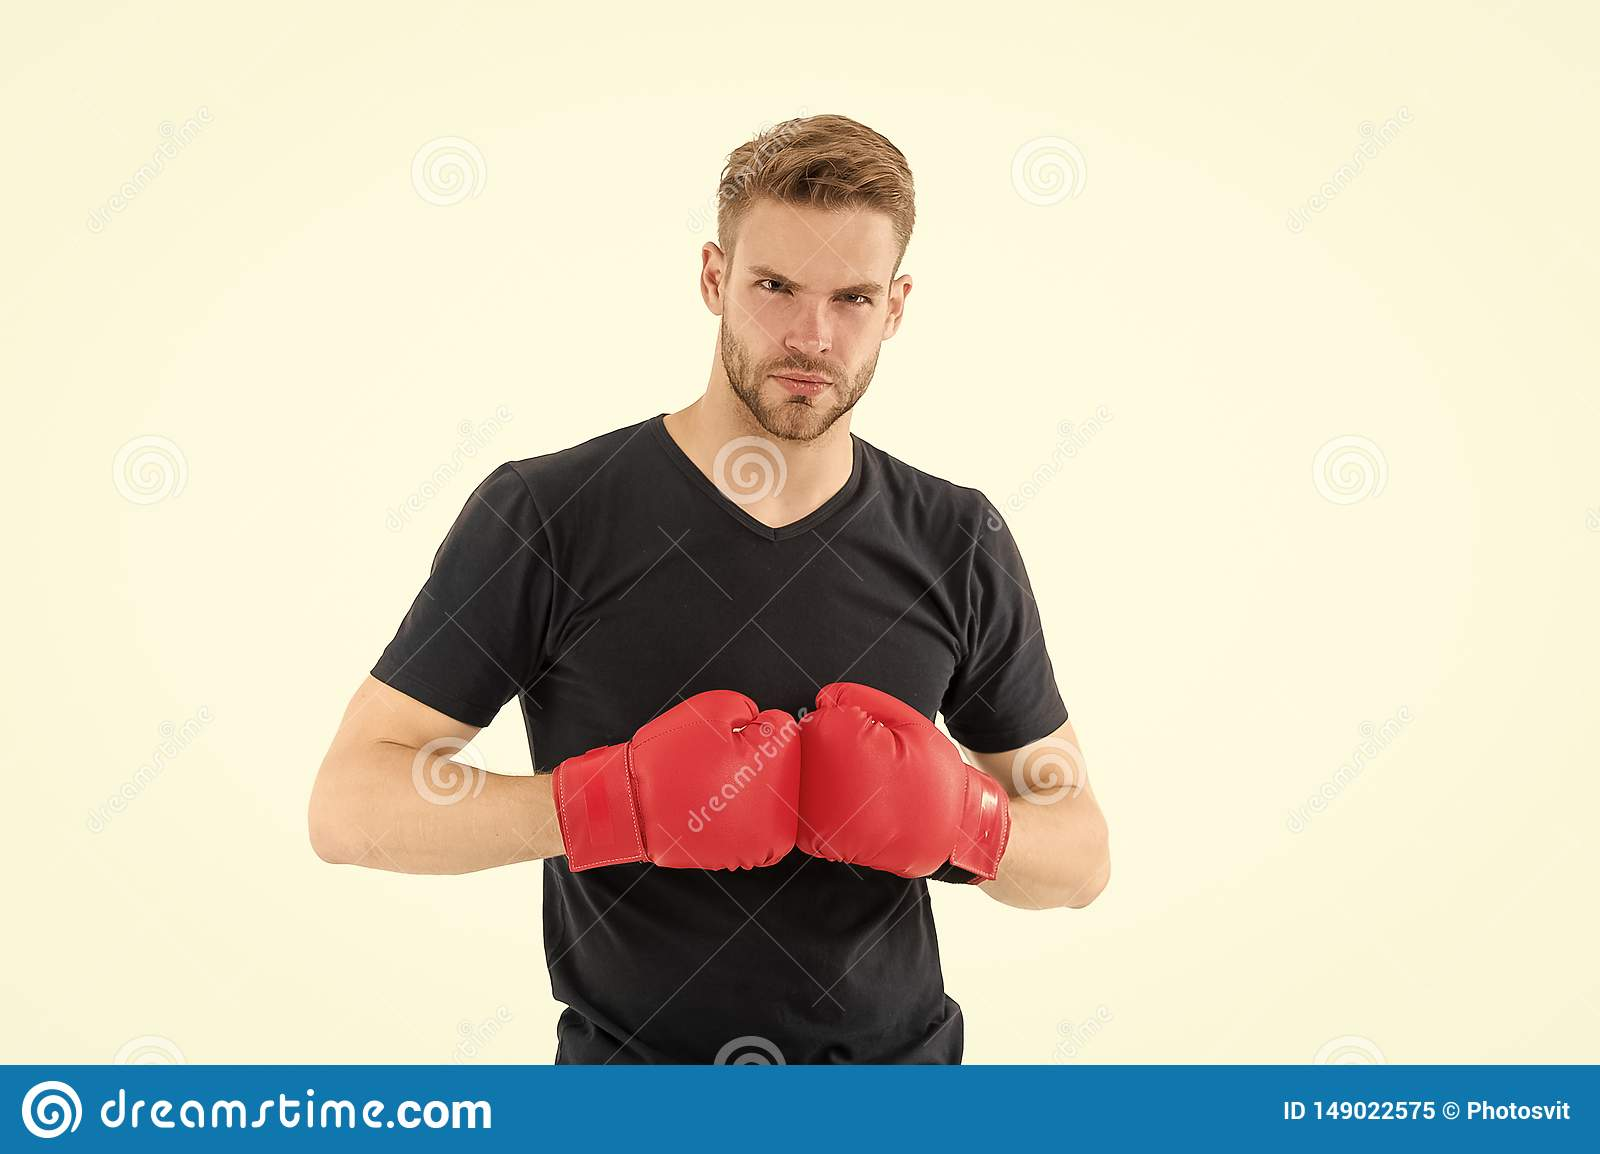 Every day as struggle. Sportsman boxer with gloves. Boxing concept. Man athlete boxer concentrated face with sport